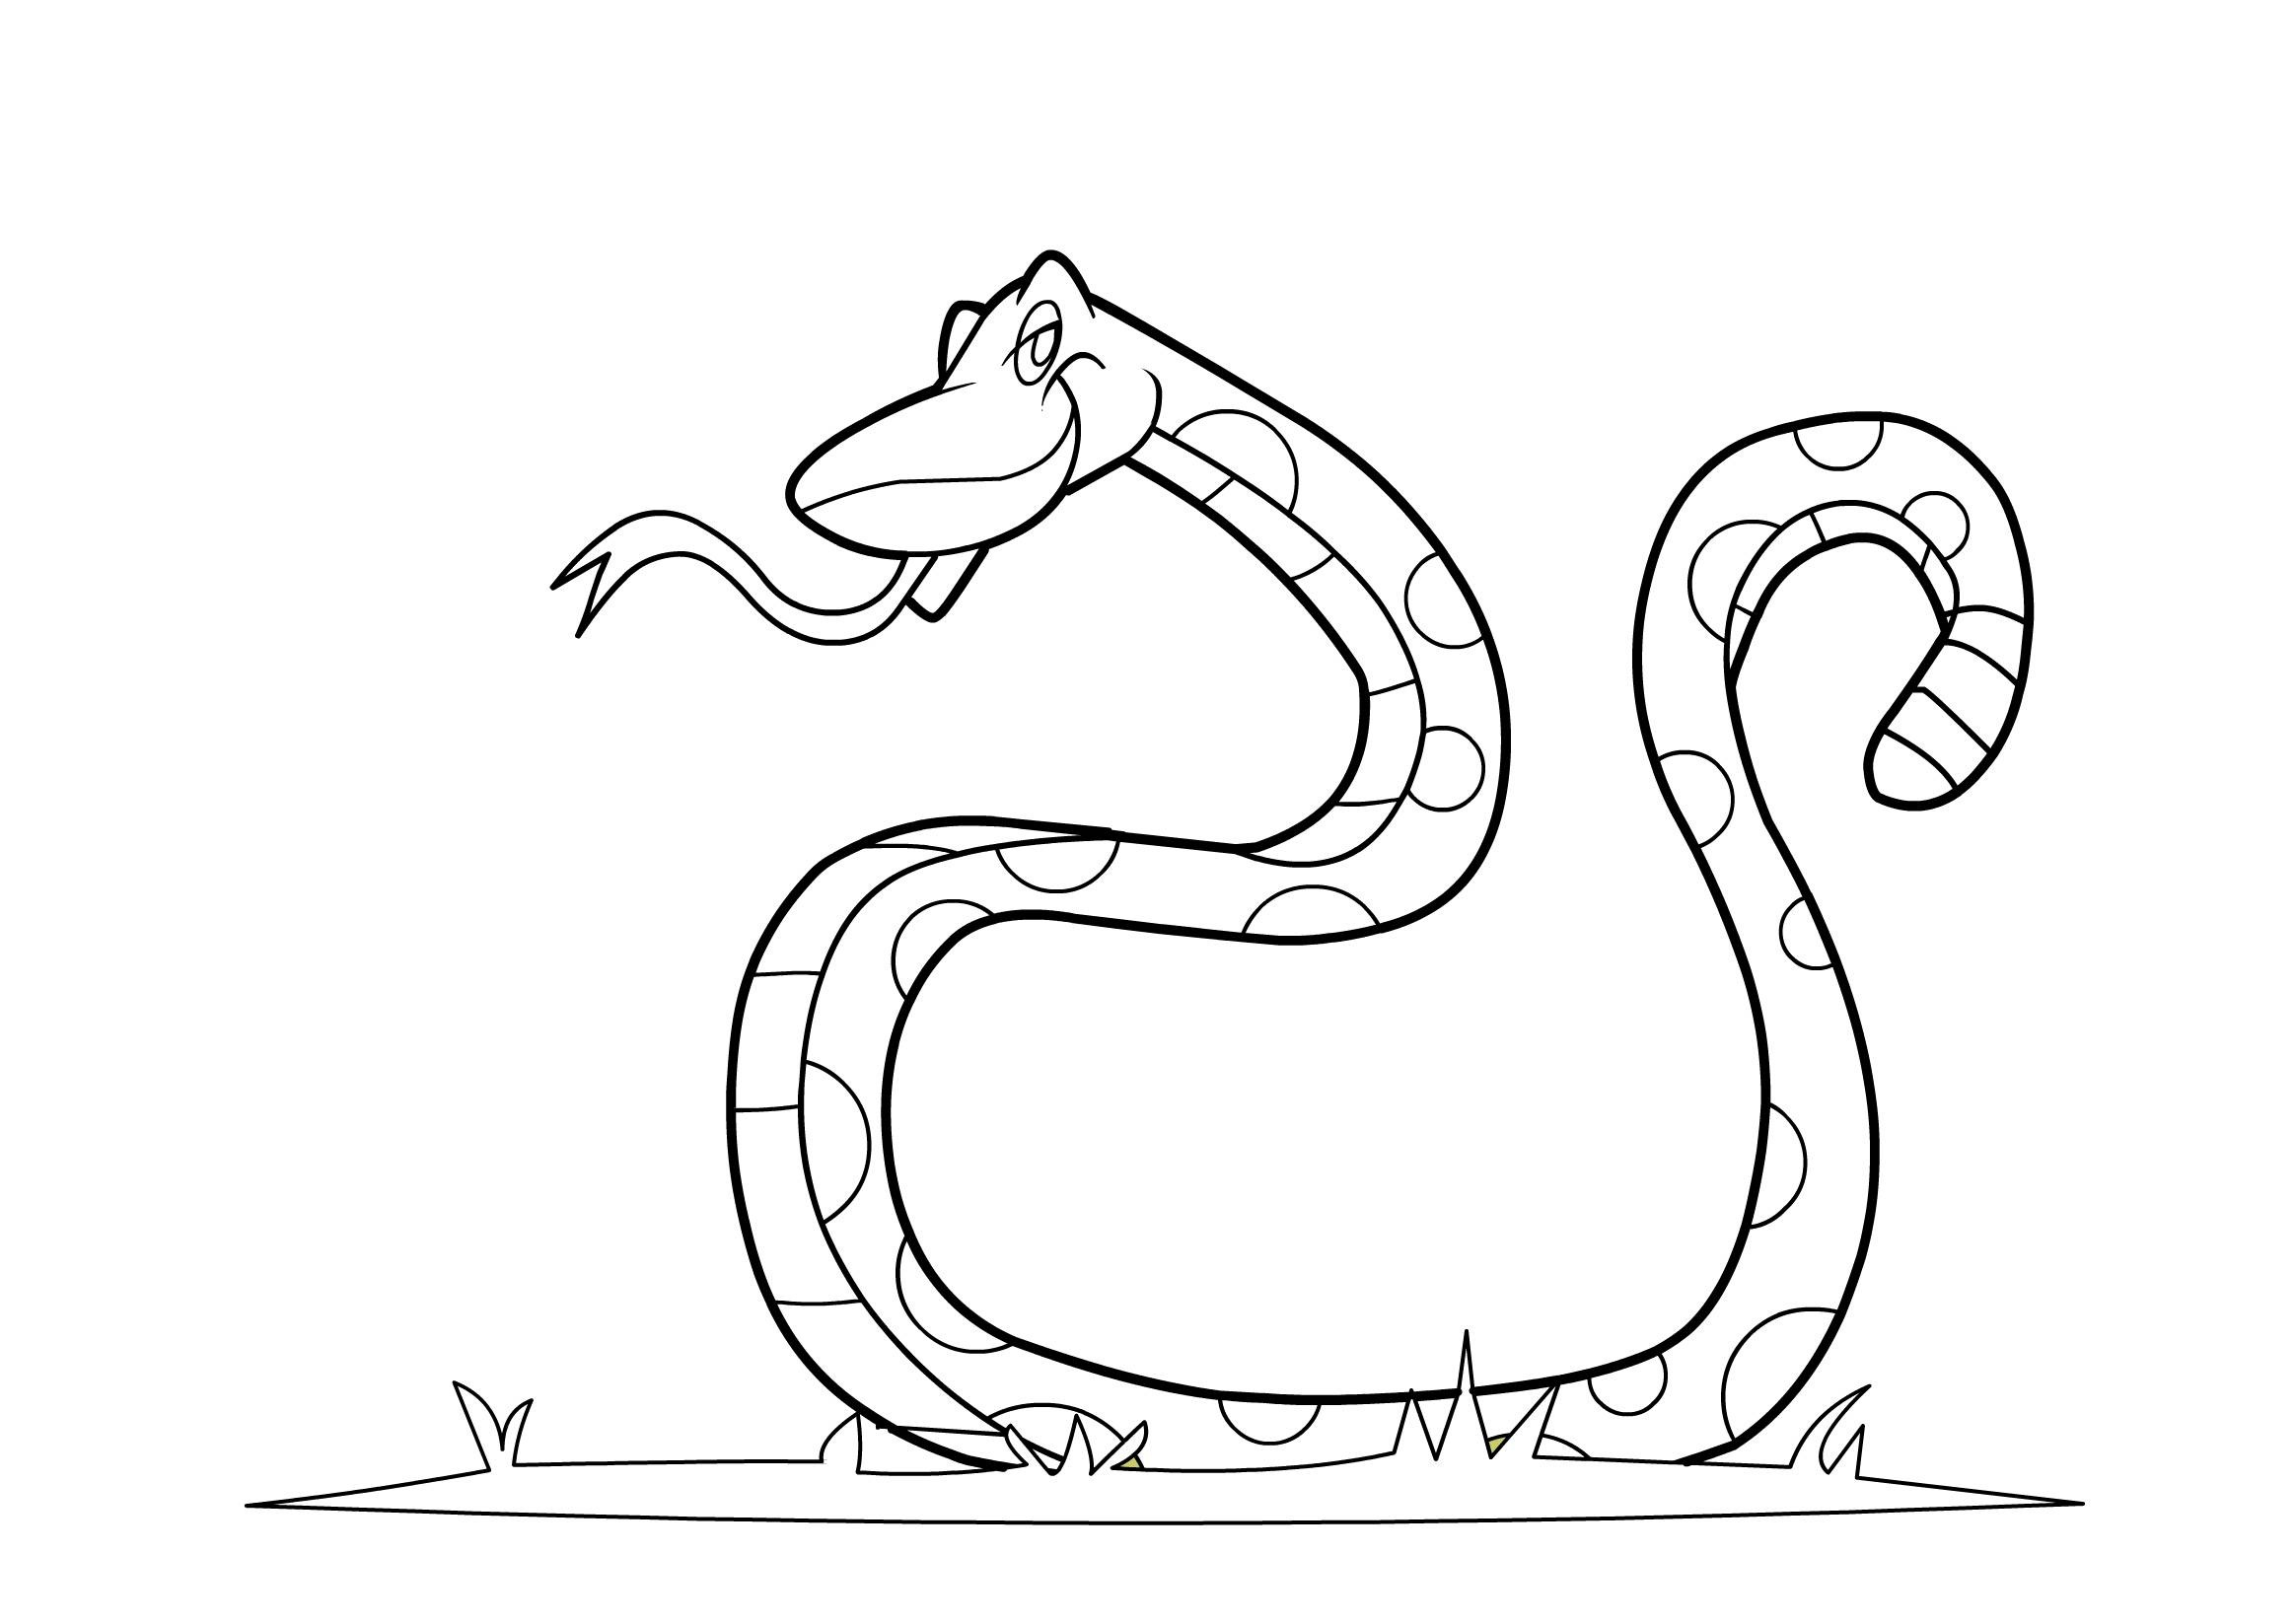 snake coloring pictures free printable snake coloring pages for kids pictures coloring snake